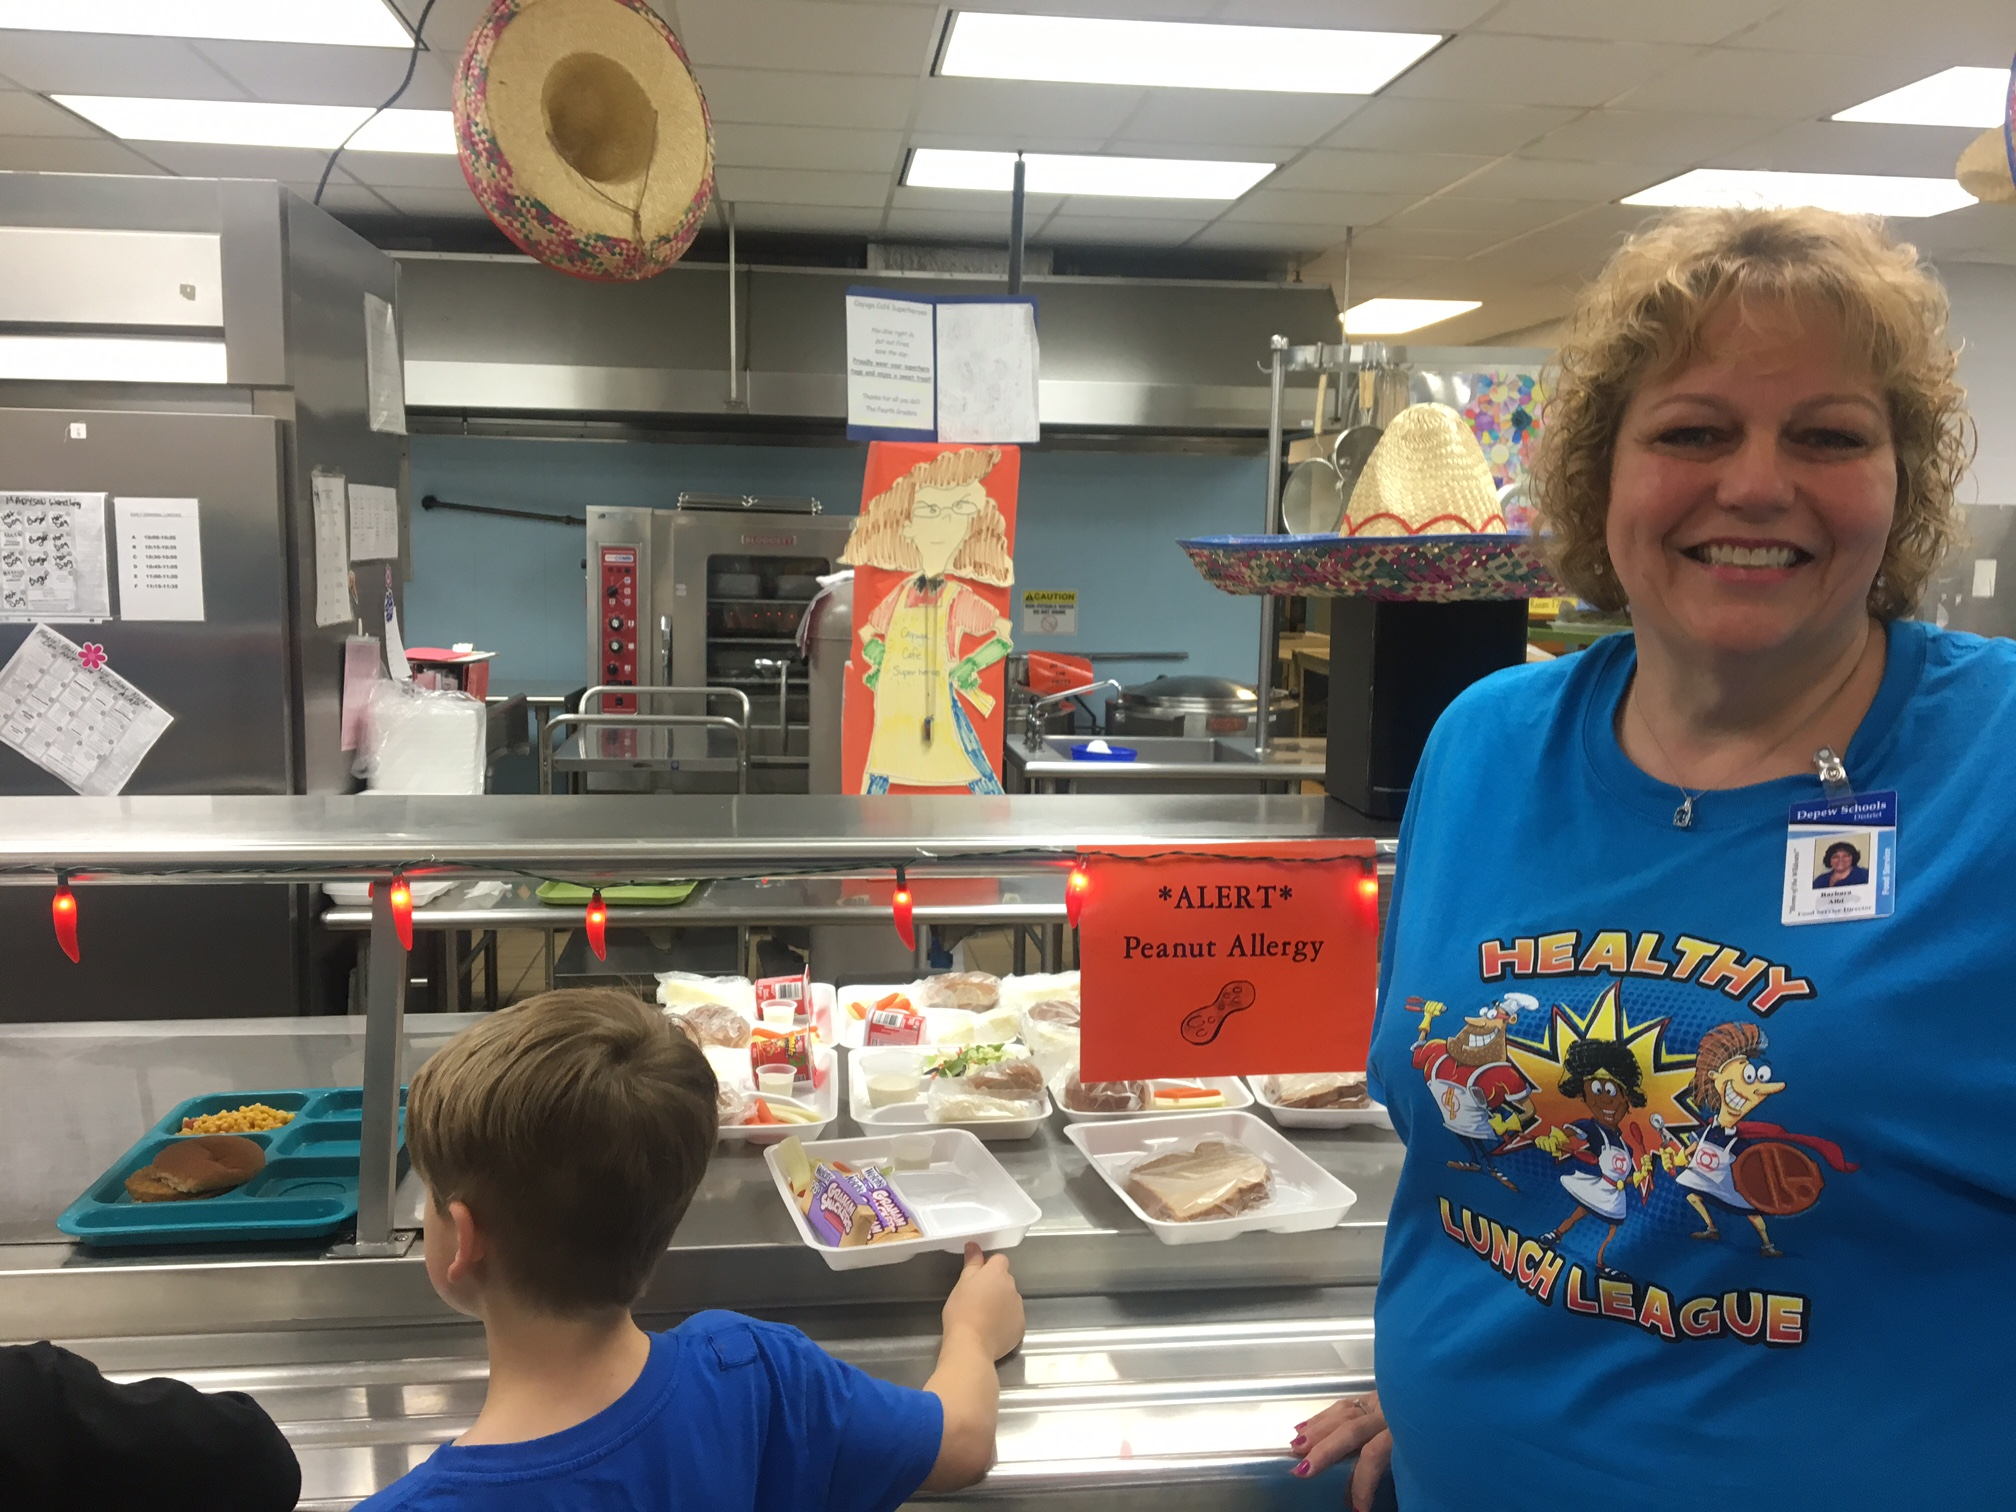 'We're not just throwing together sandwiches,' says Barbara Albi, food service director with the Depew Union Free School District. (Photos by Scott Scanlon)